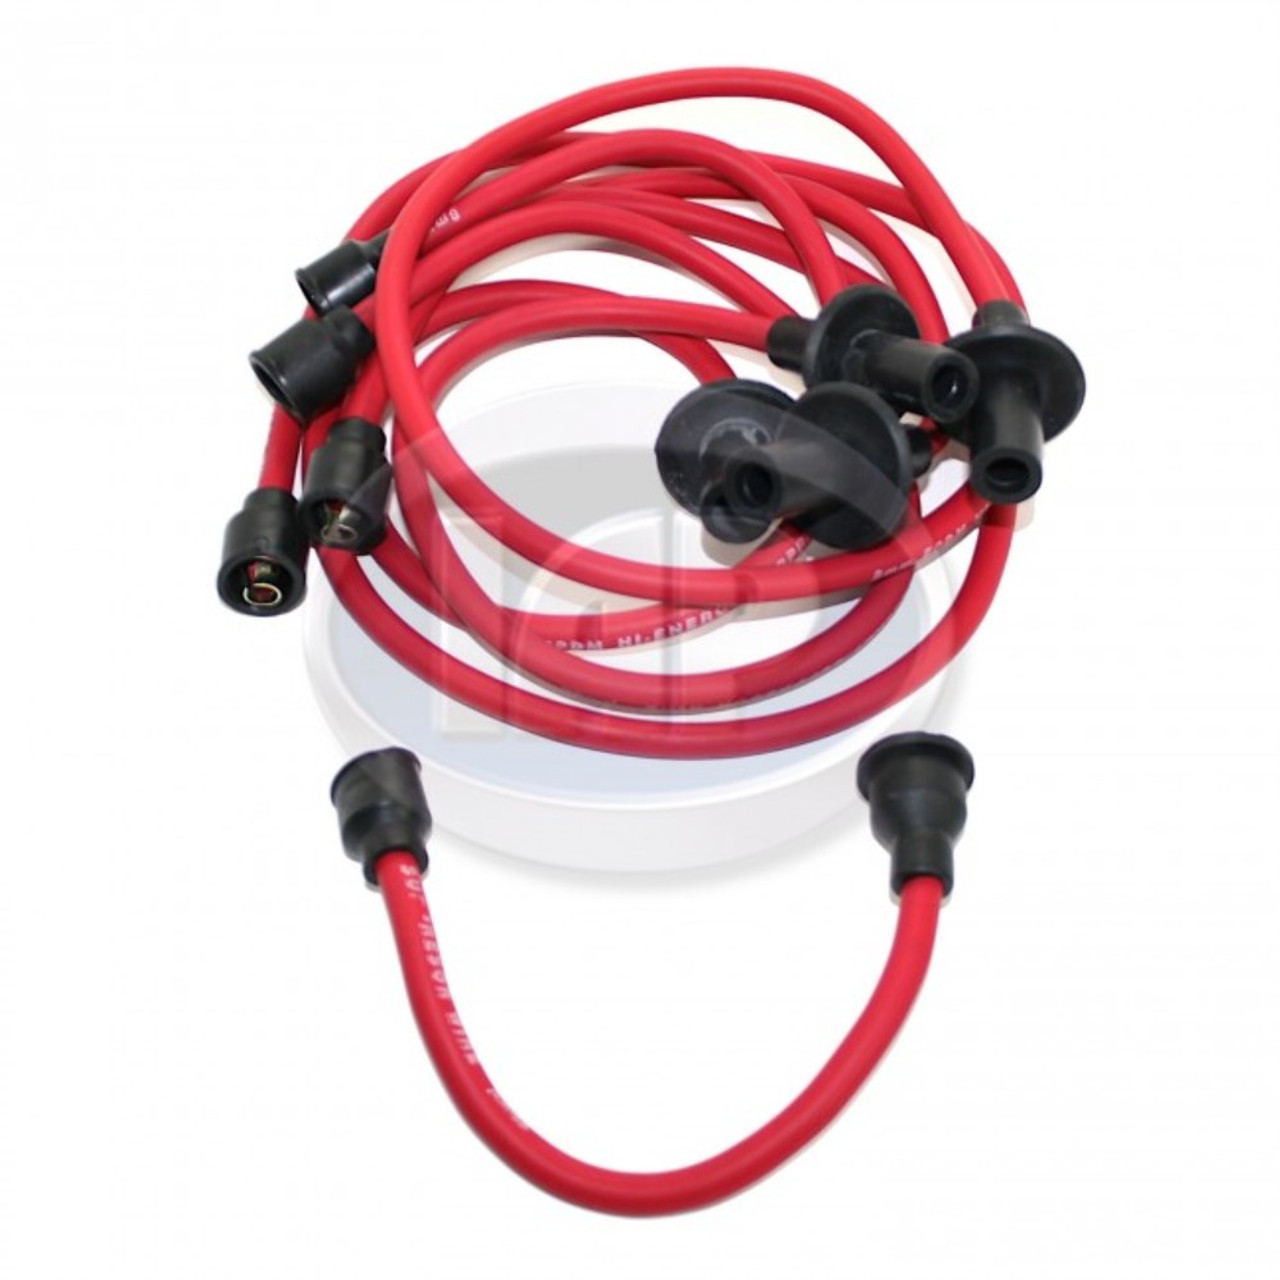 IAP AC998014B Ignition Wire Set, Red For Air Cooled VW 1200 - 1600cc Engines